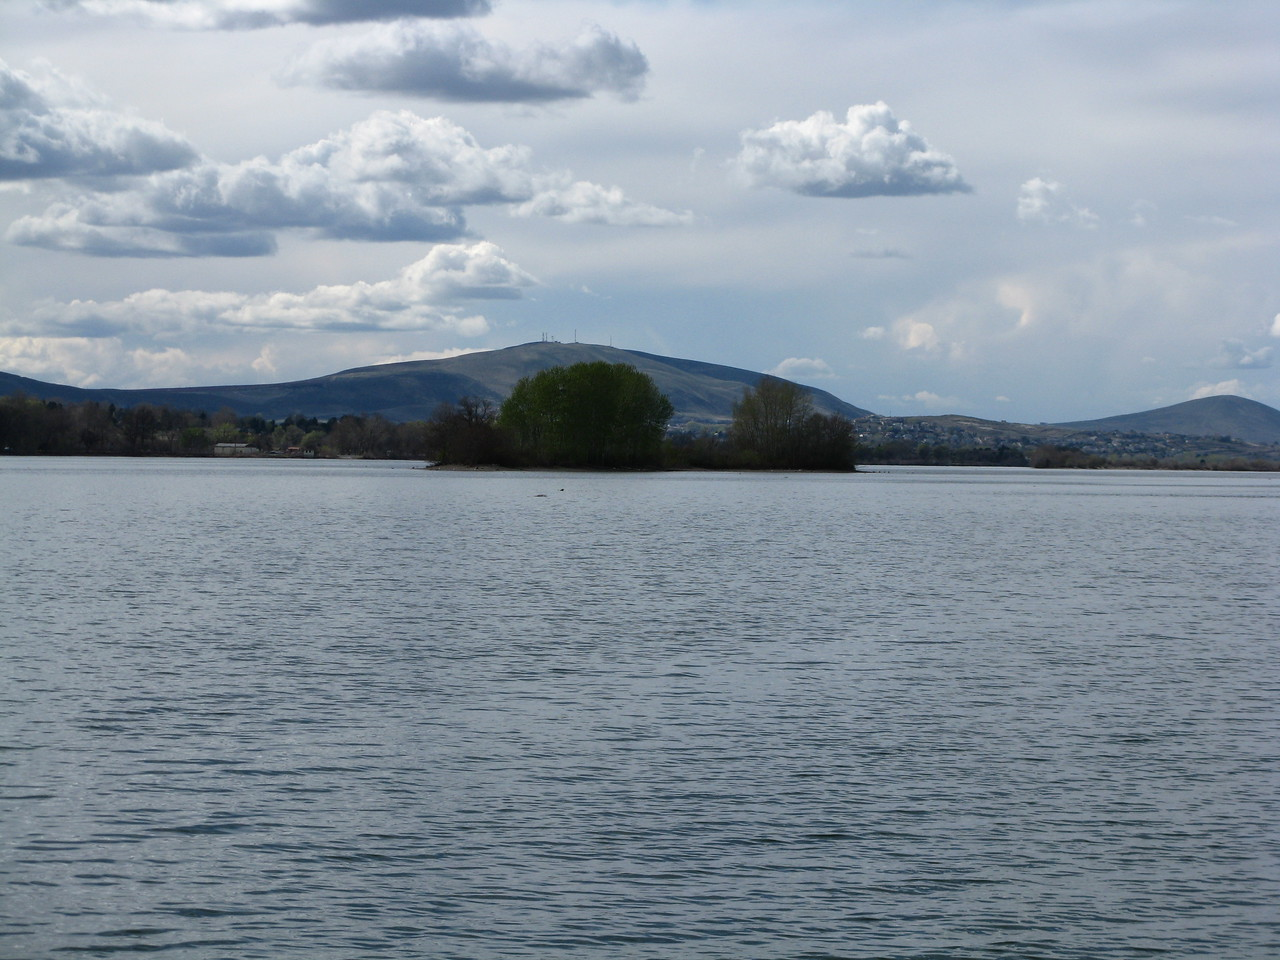 We passed this island in the Columbia River.